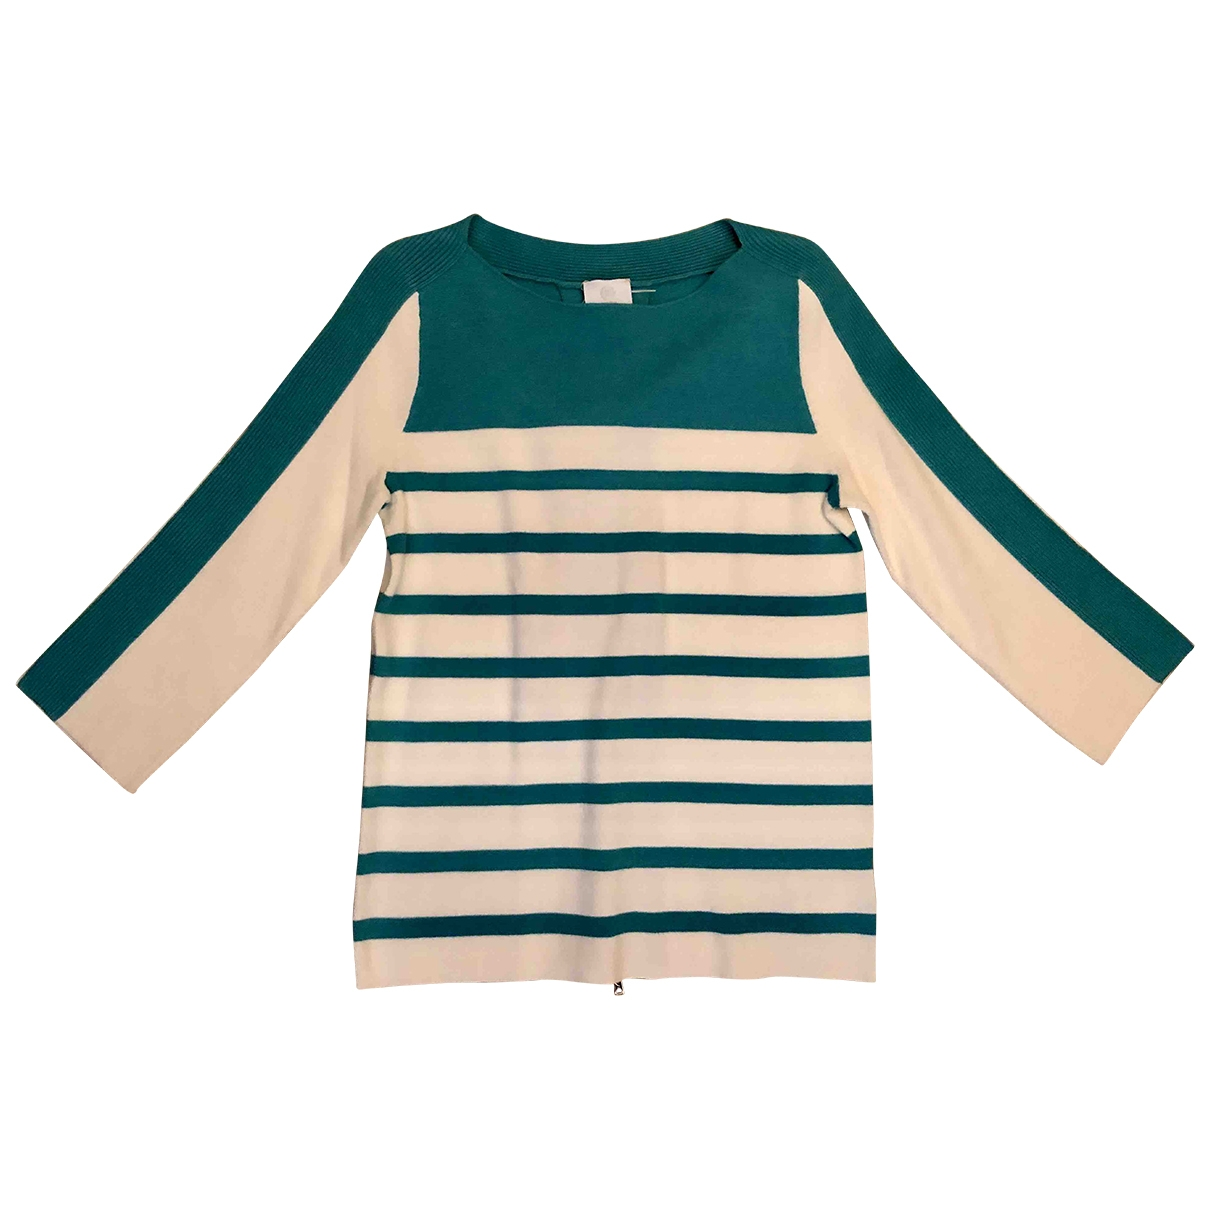 Bogner \N Green Cotton Knitwear for Women S International